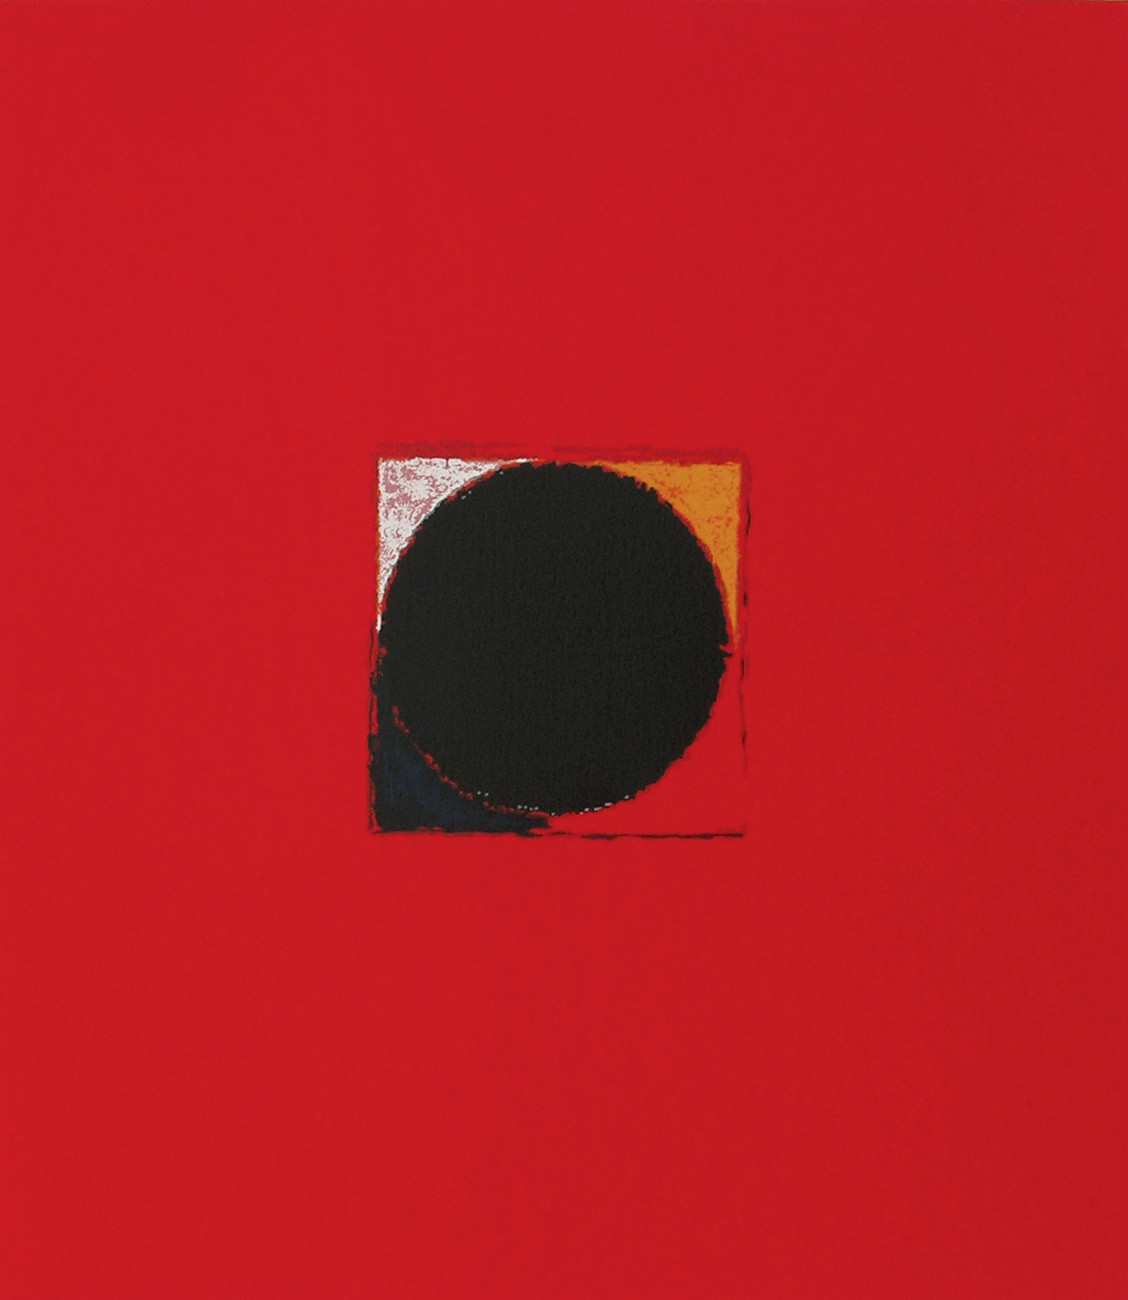 Bindu by S H Raza, Geometrical Serigraph, Serigraph on Paper, Red color